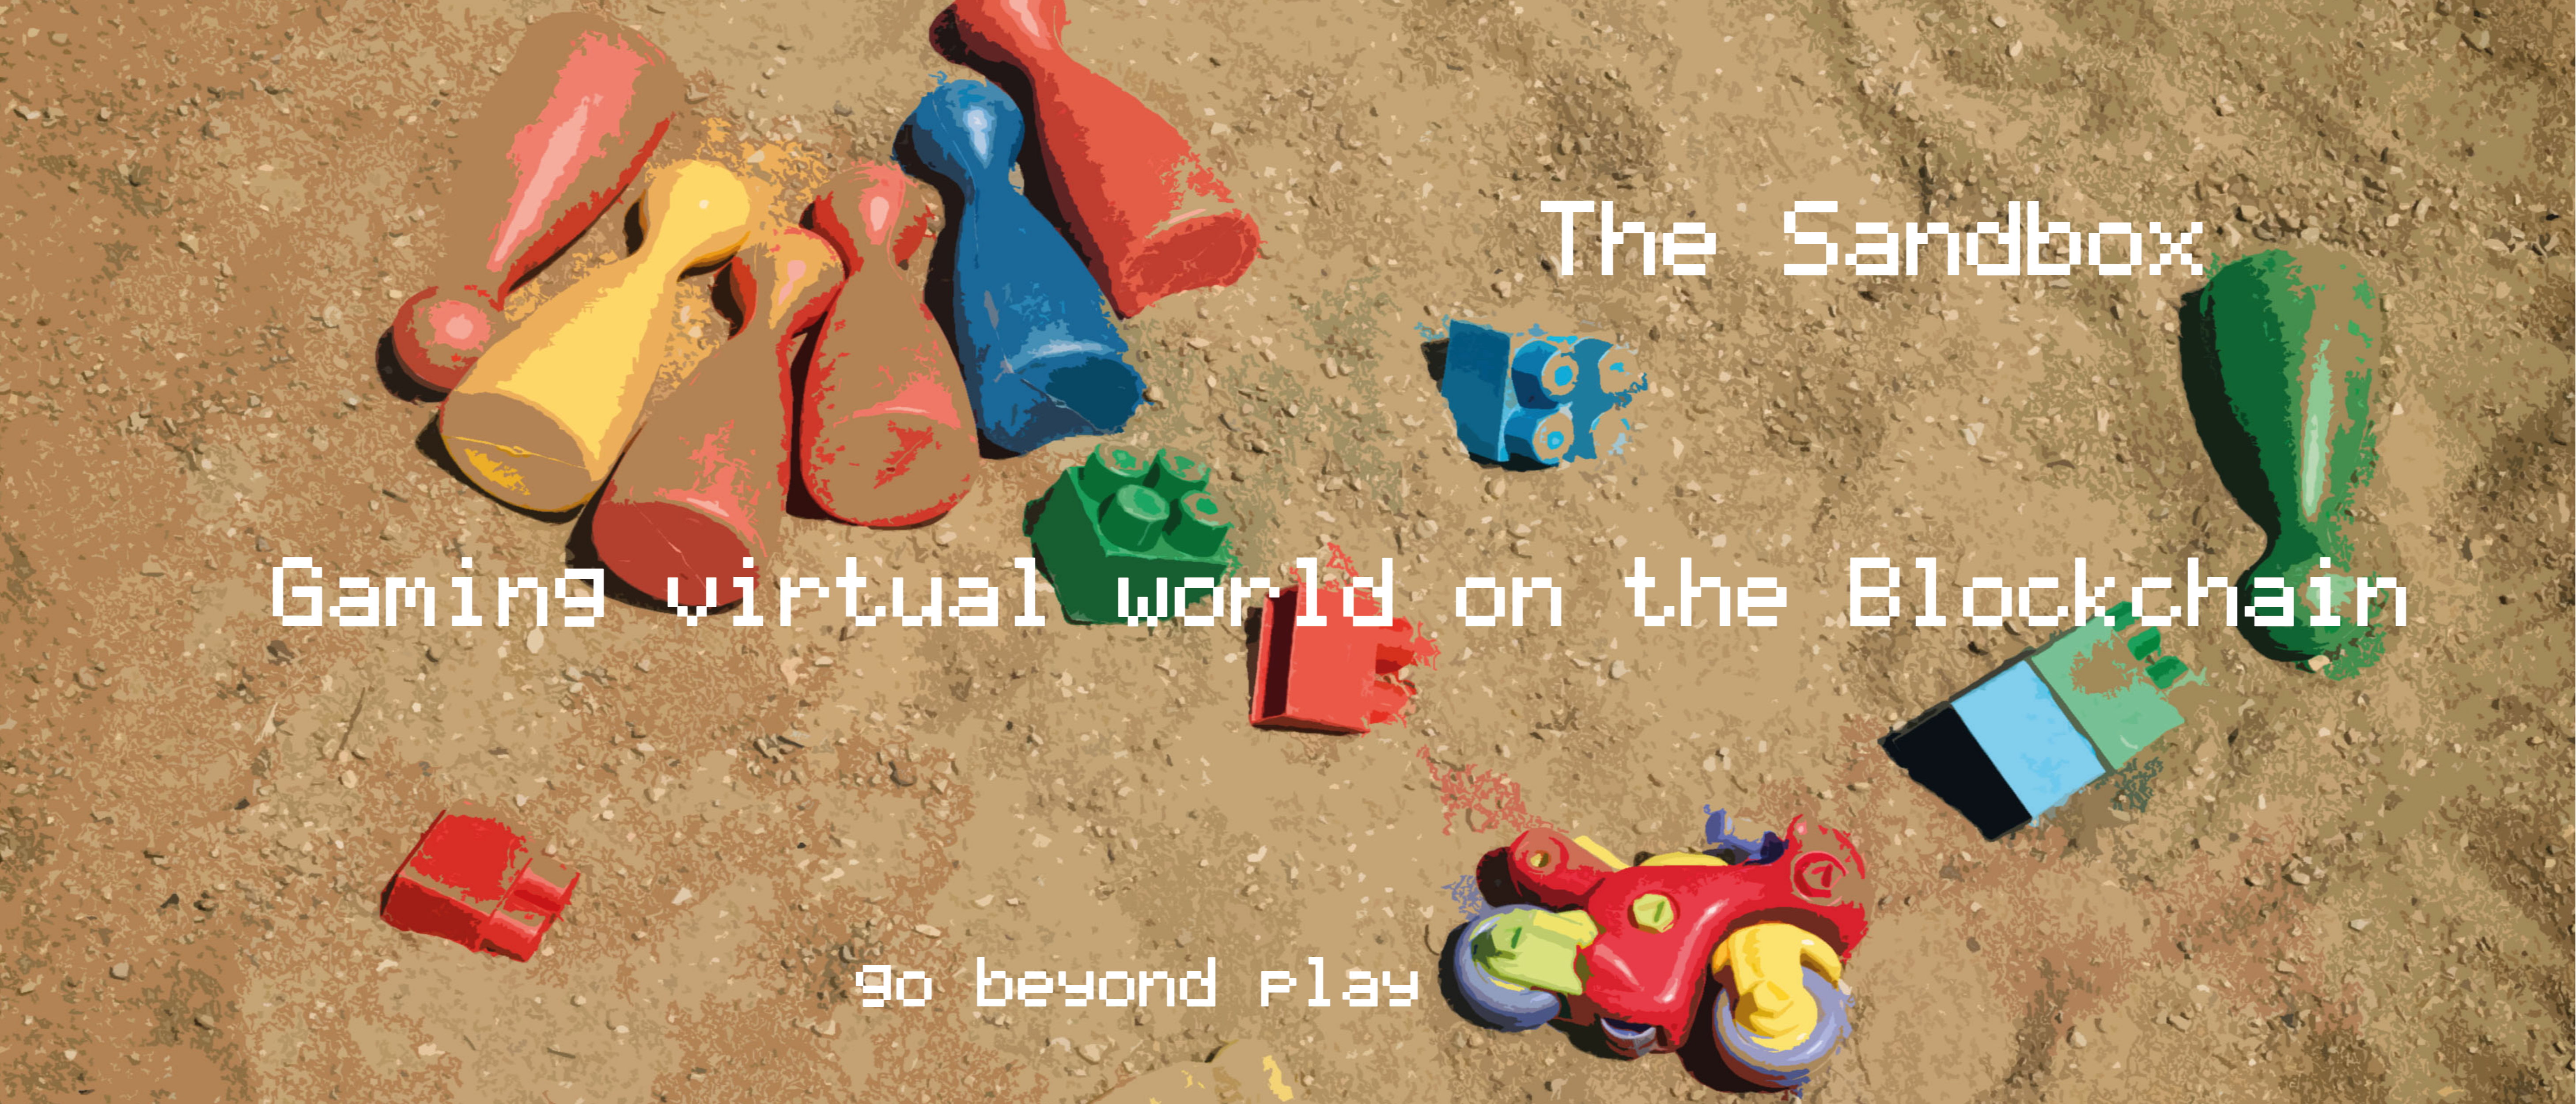 /the-sandbox-a-decentralized-virtual-gaming-world-nm483wmq feature image